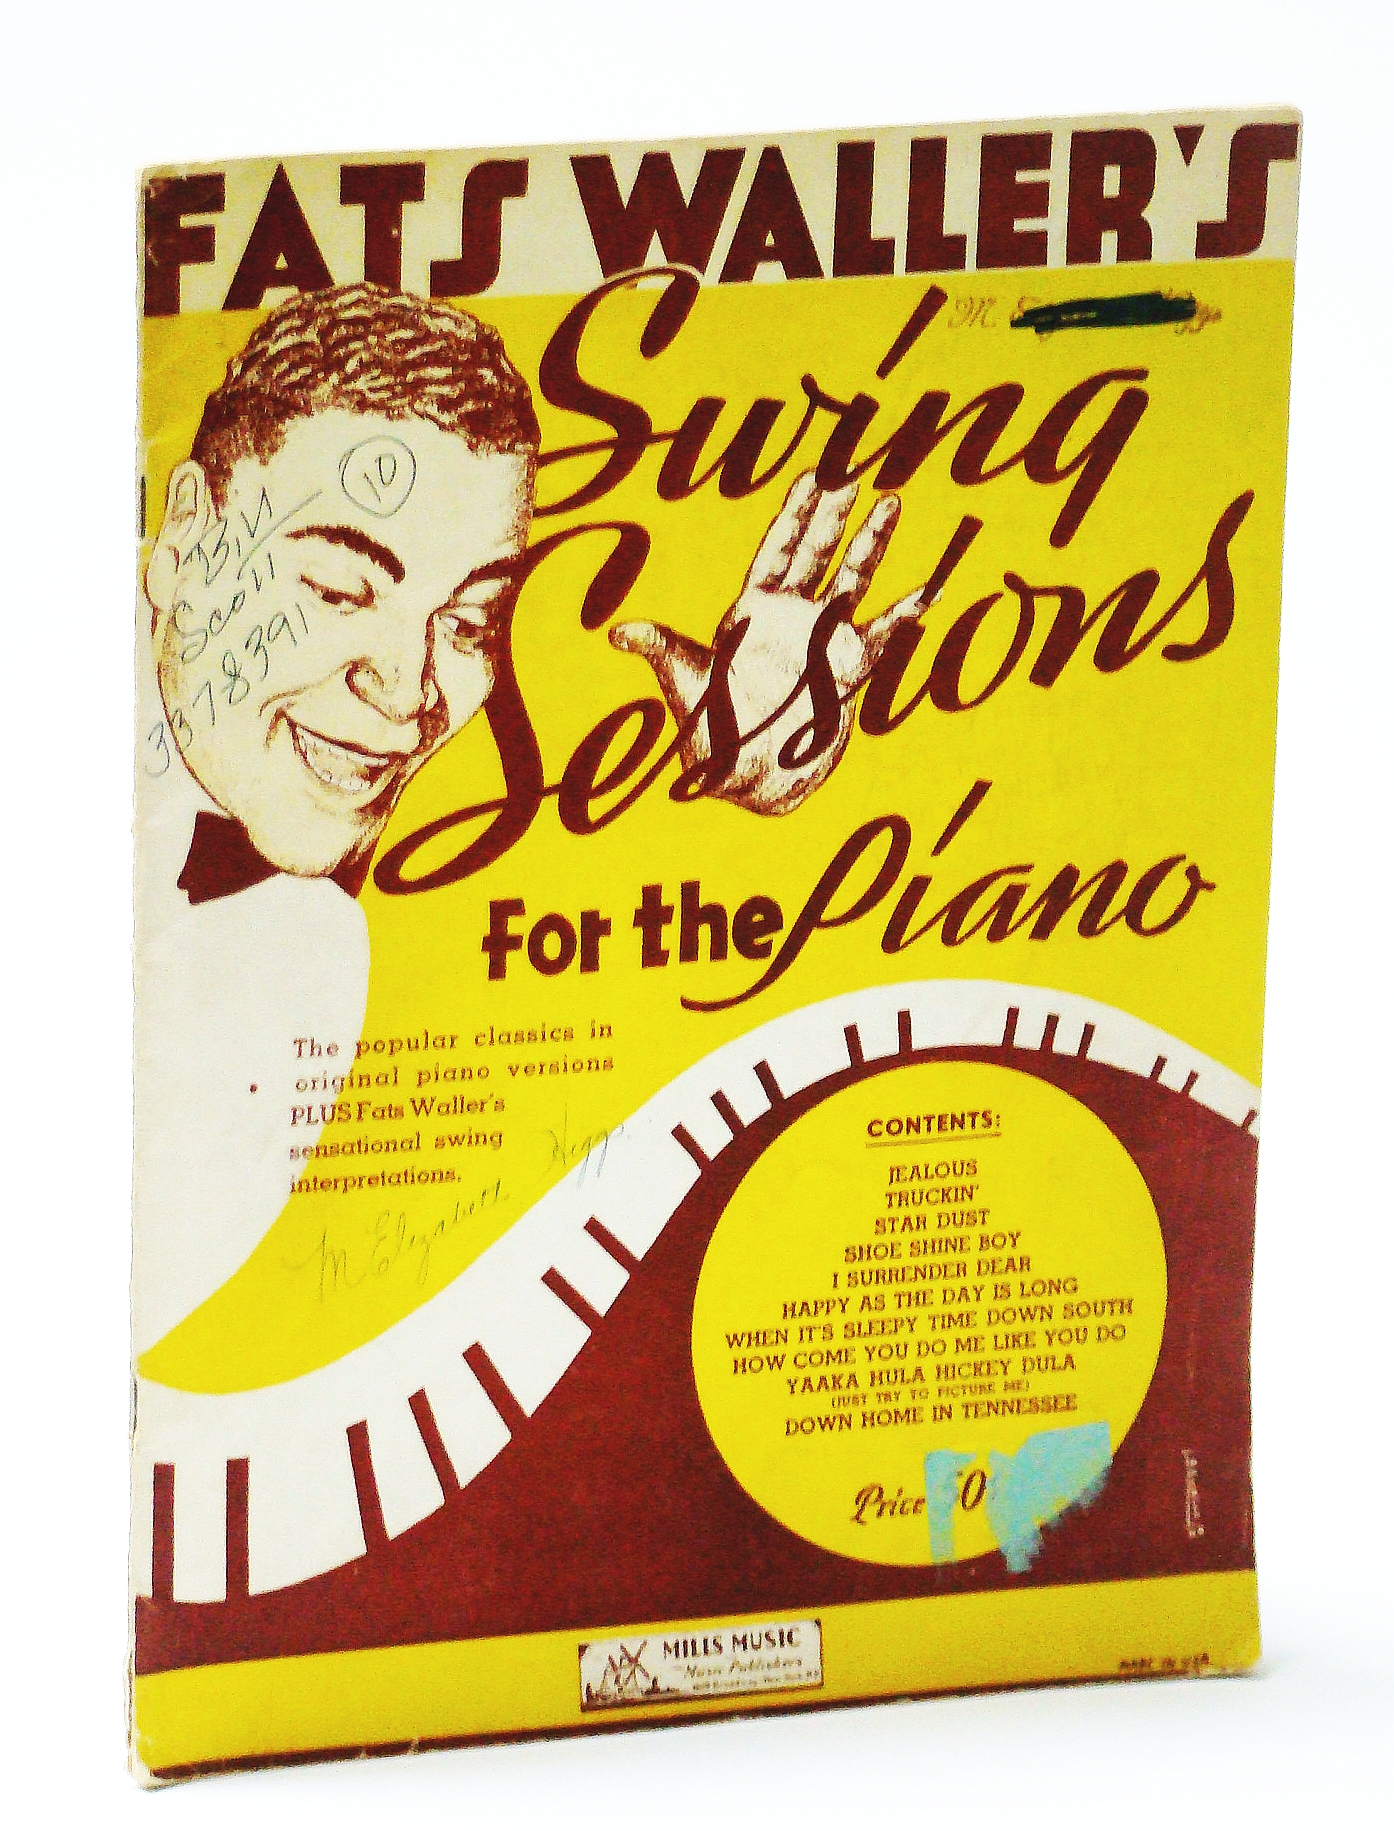 Image for Fats Waller's Swing Sessions for the Piano: Piano Sheet Music